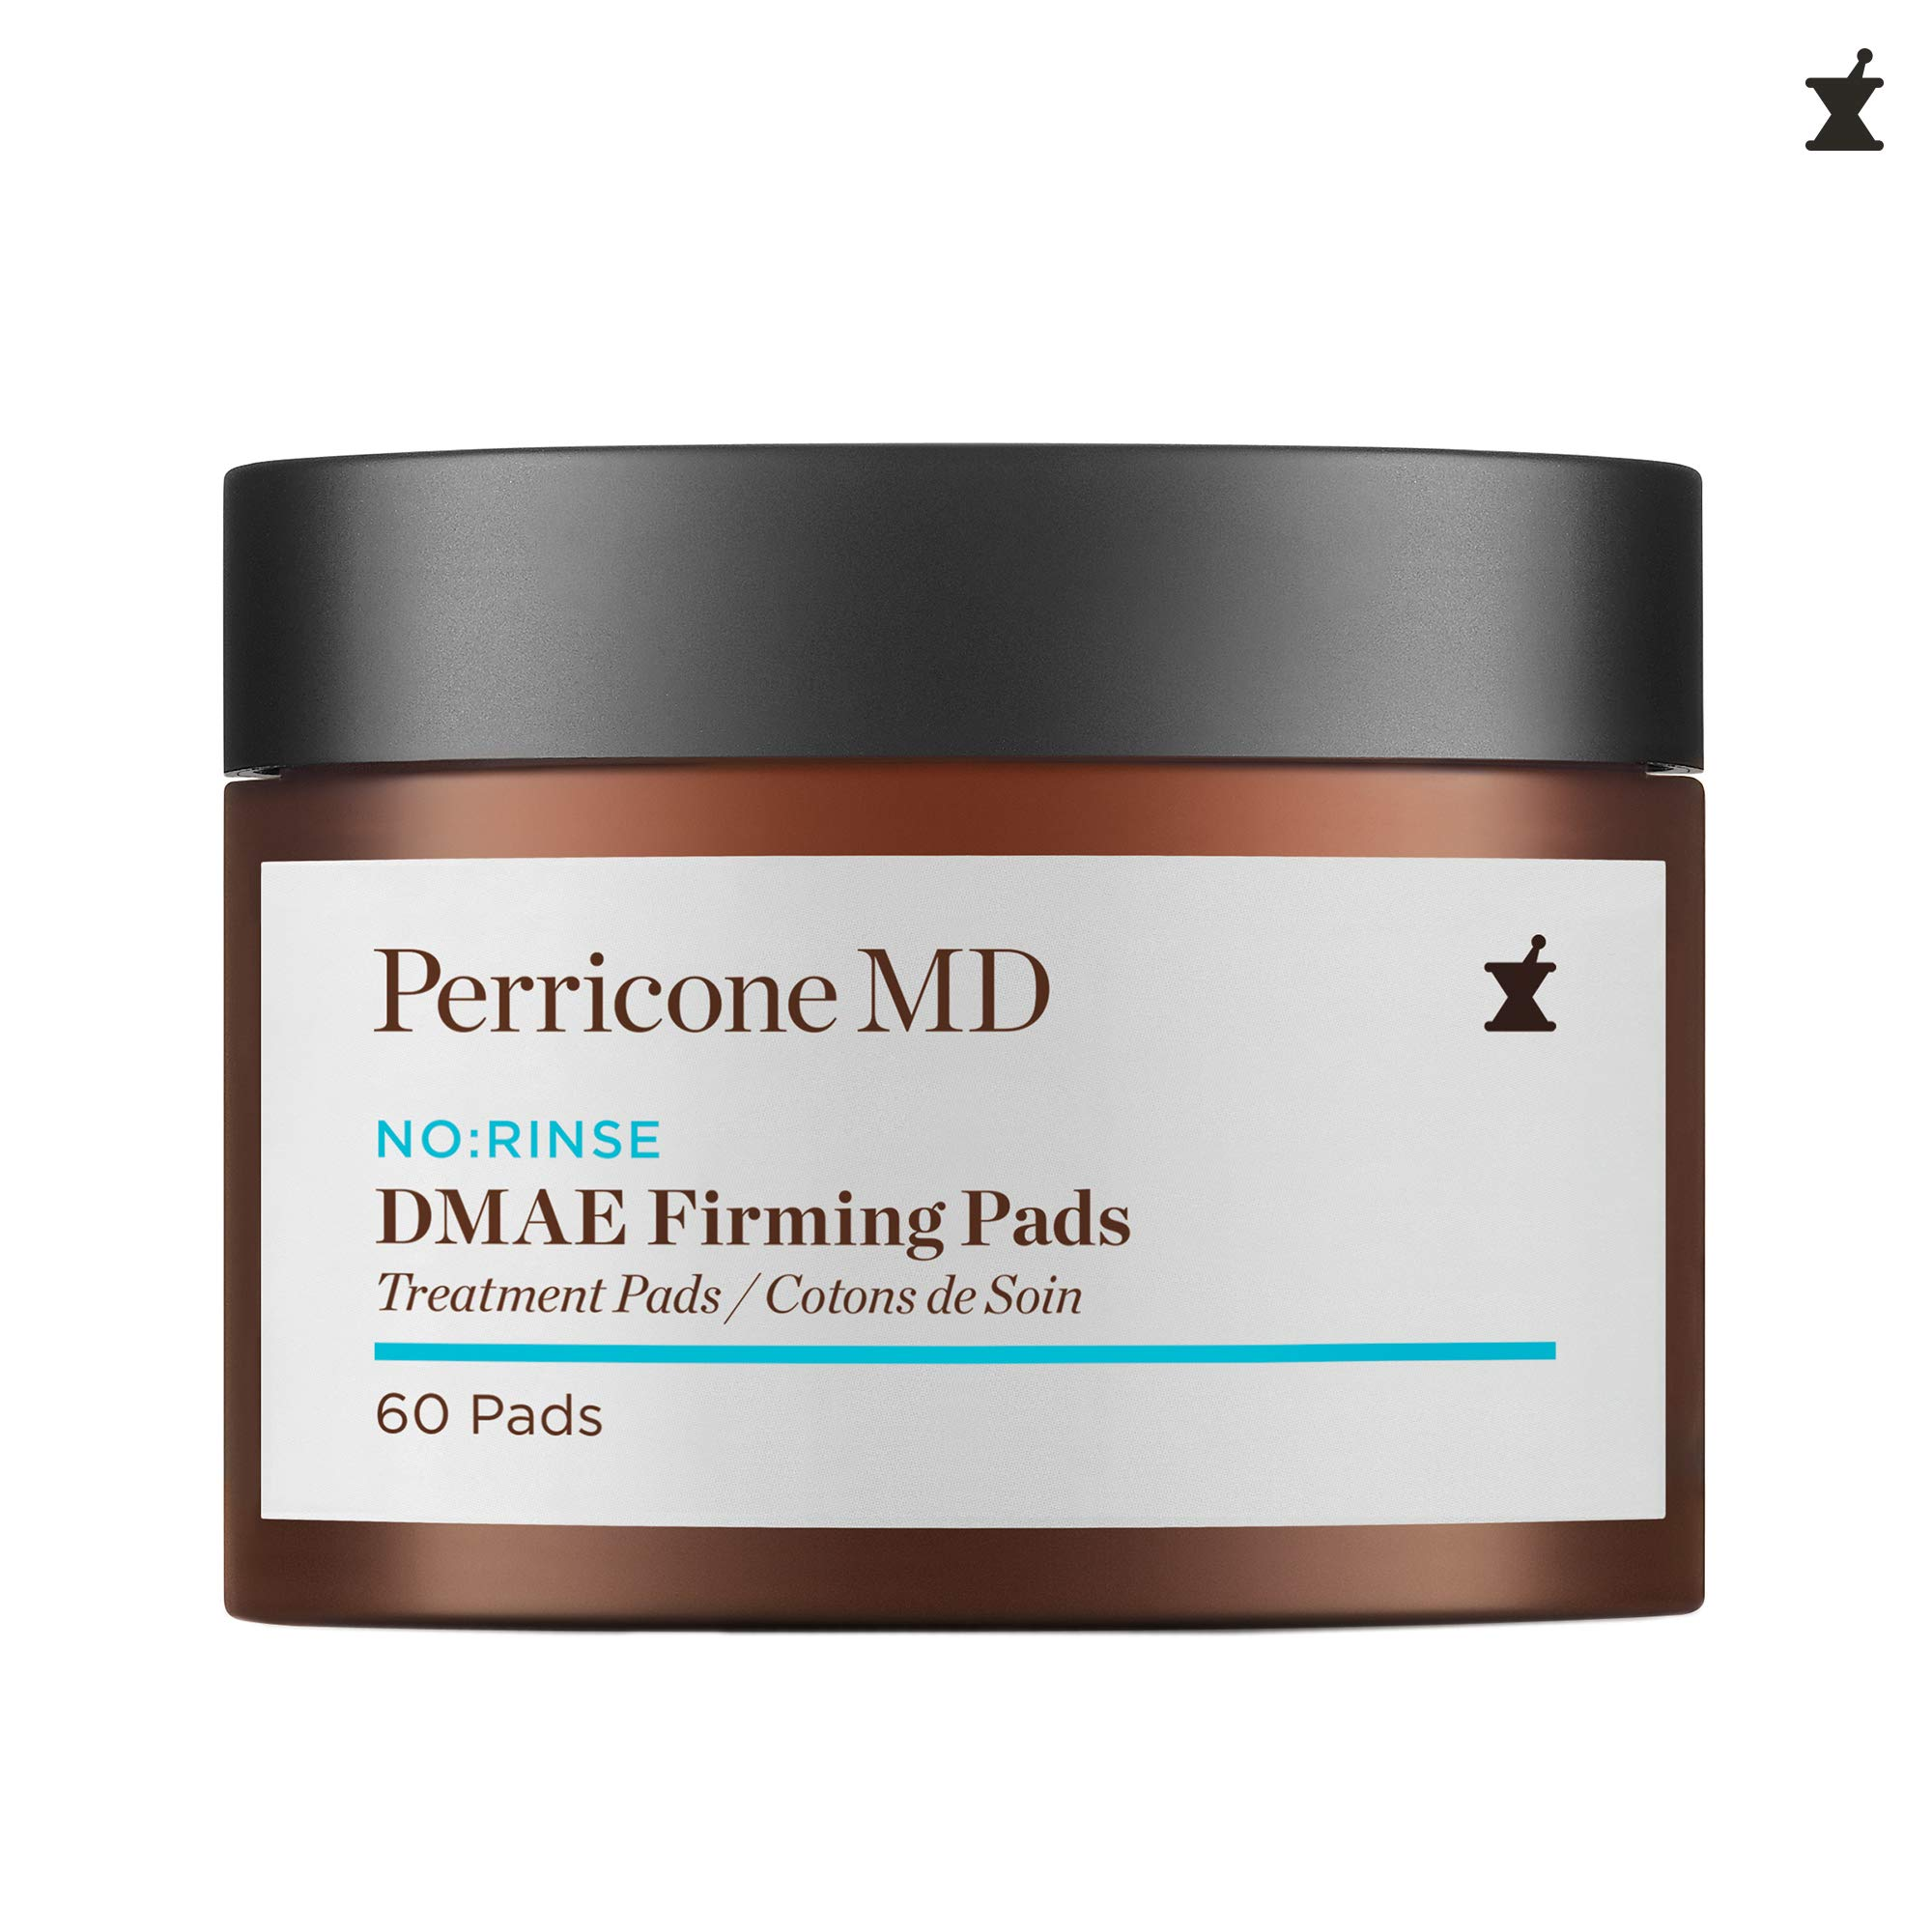 Perricone M.D. - No:Rinse DMAE Firming Pads by Perricone MD